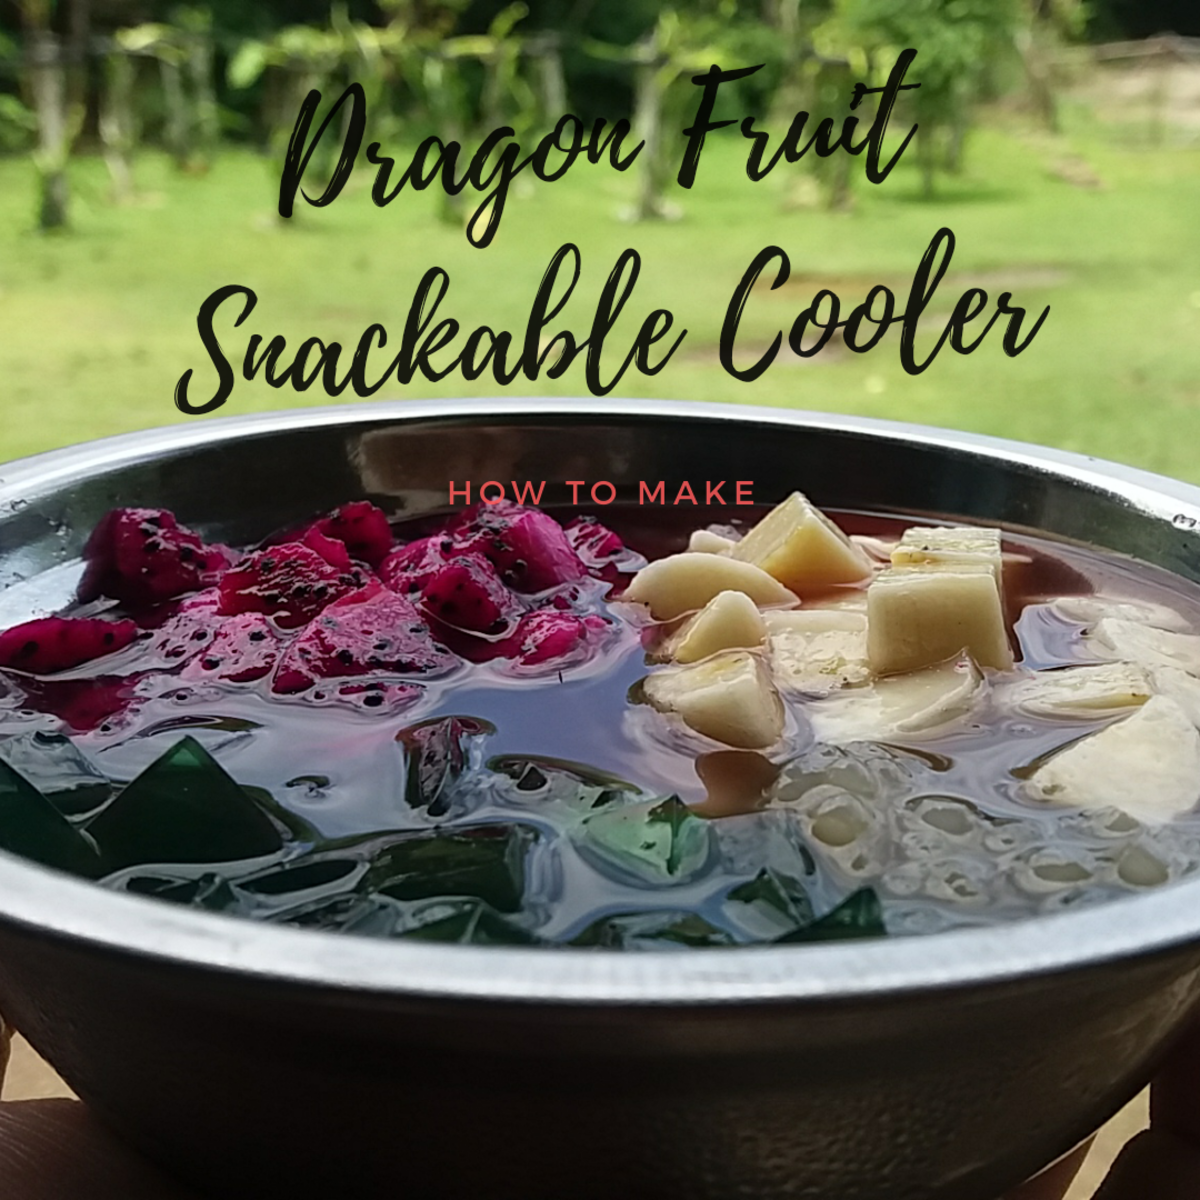 how to make snackable dragon fruit coolers